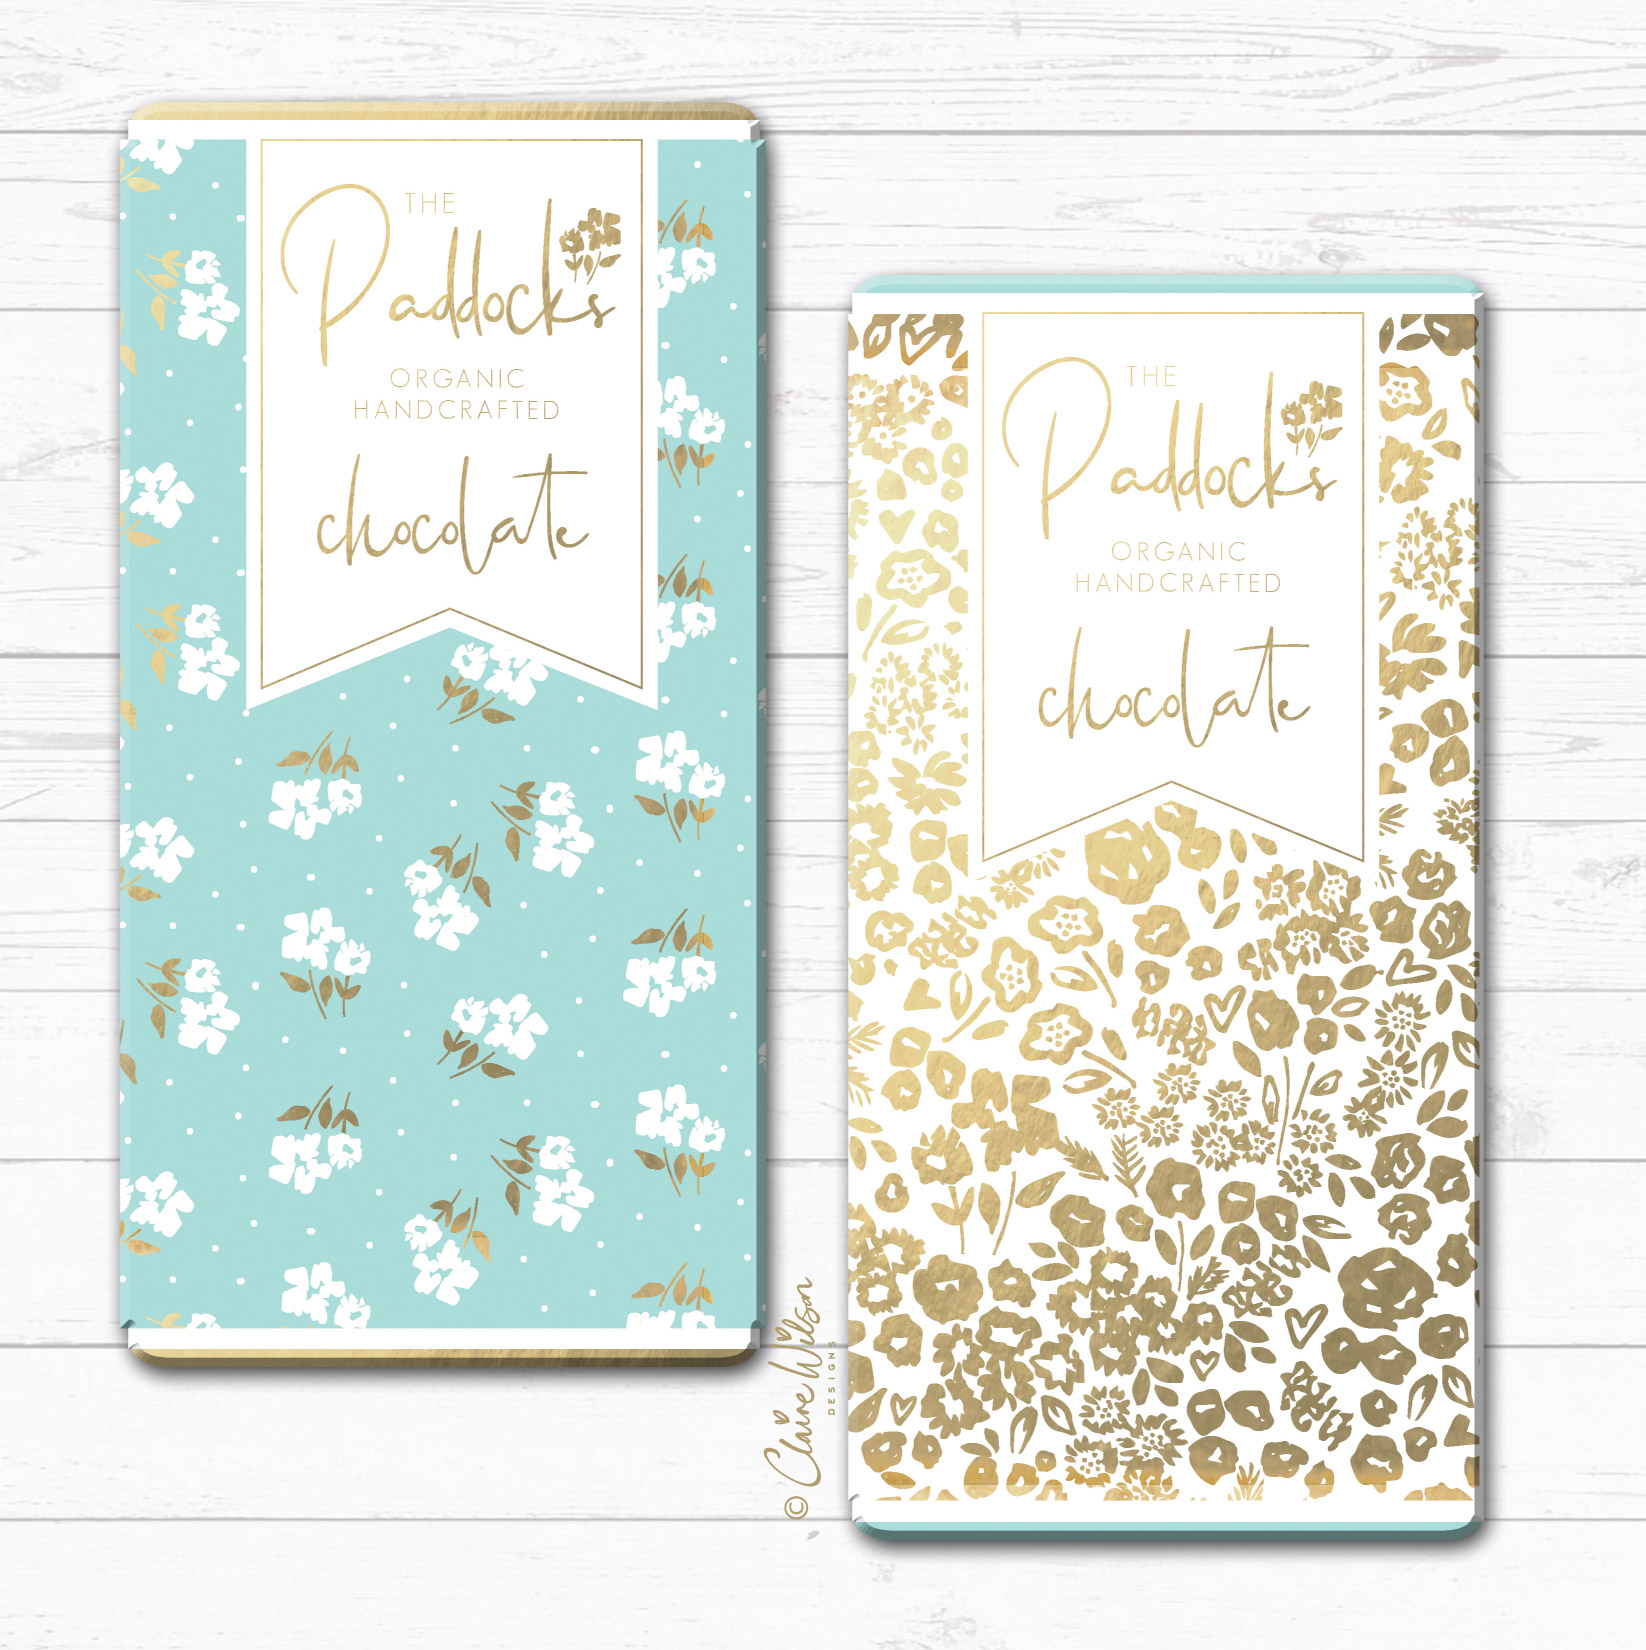 CWD_Chocolate_Ditsy Florals-01